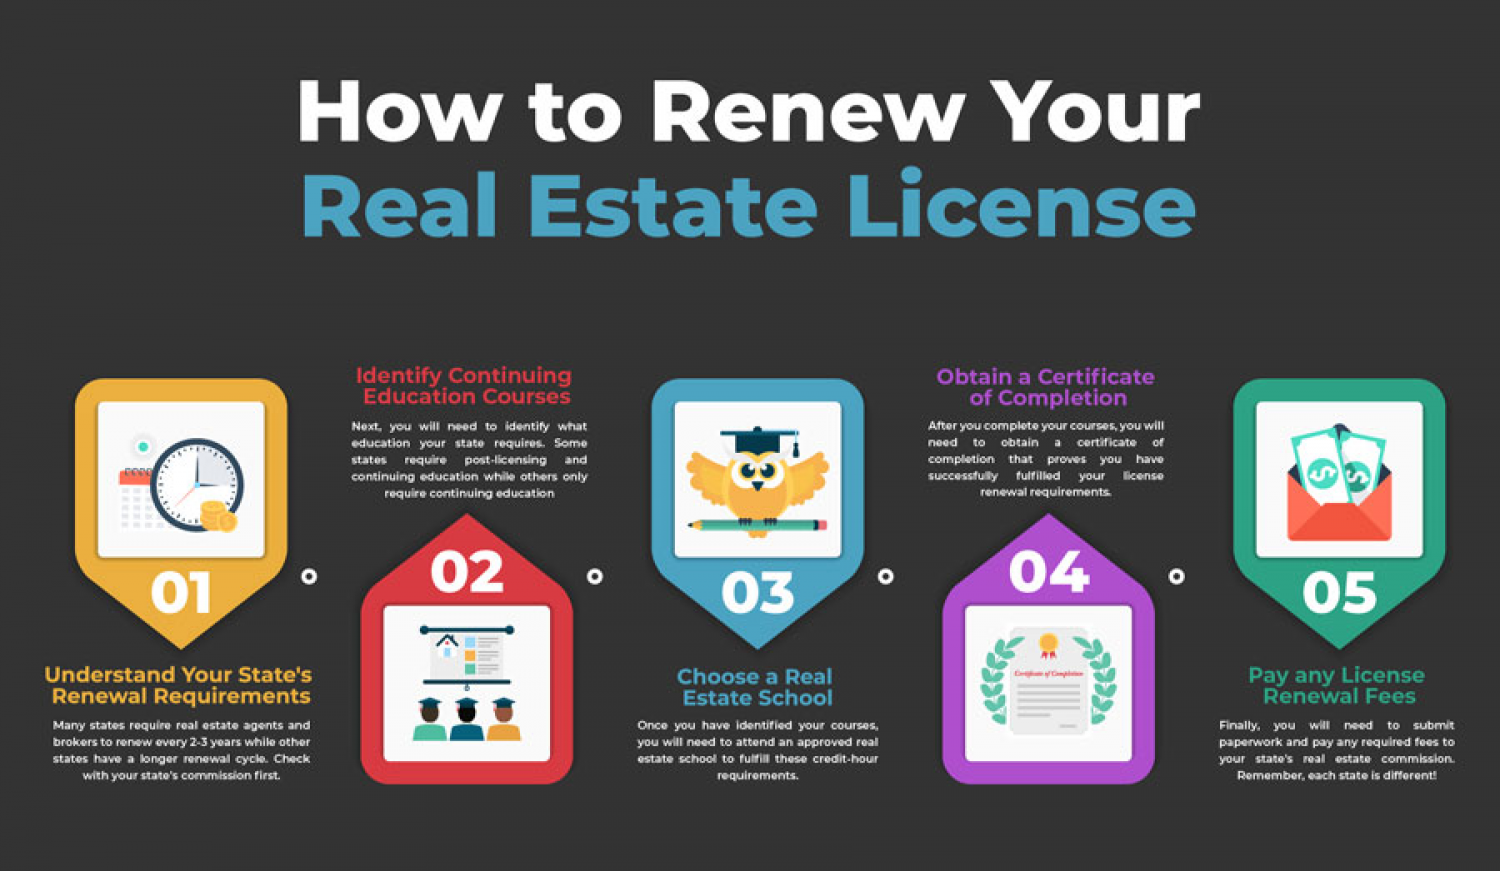 How to Renew Your Real Estate License Infographic